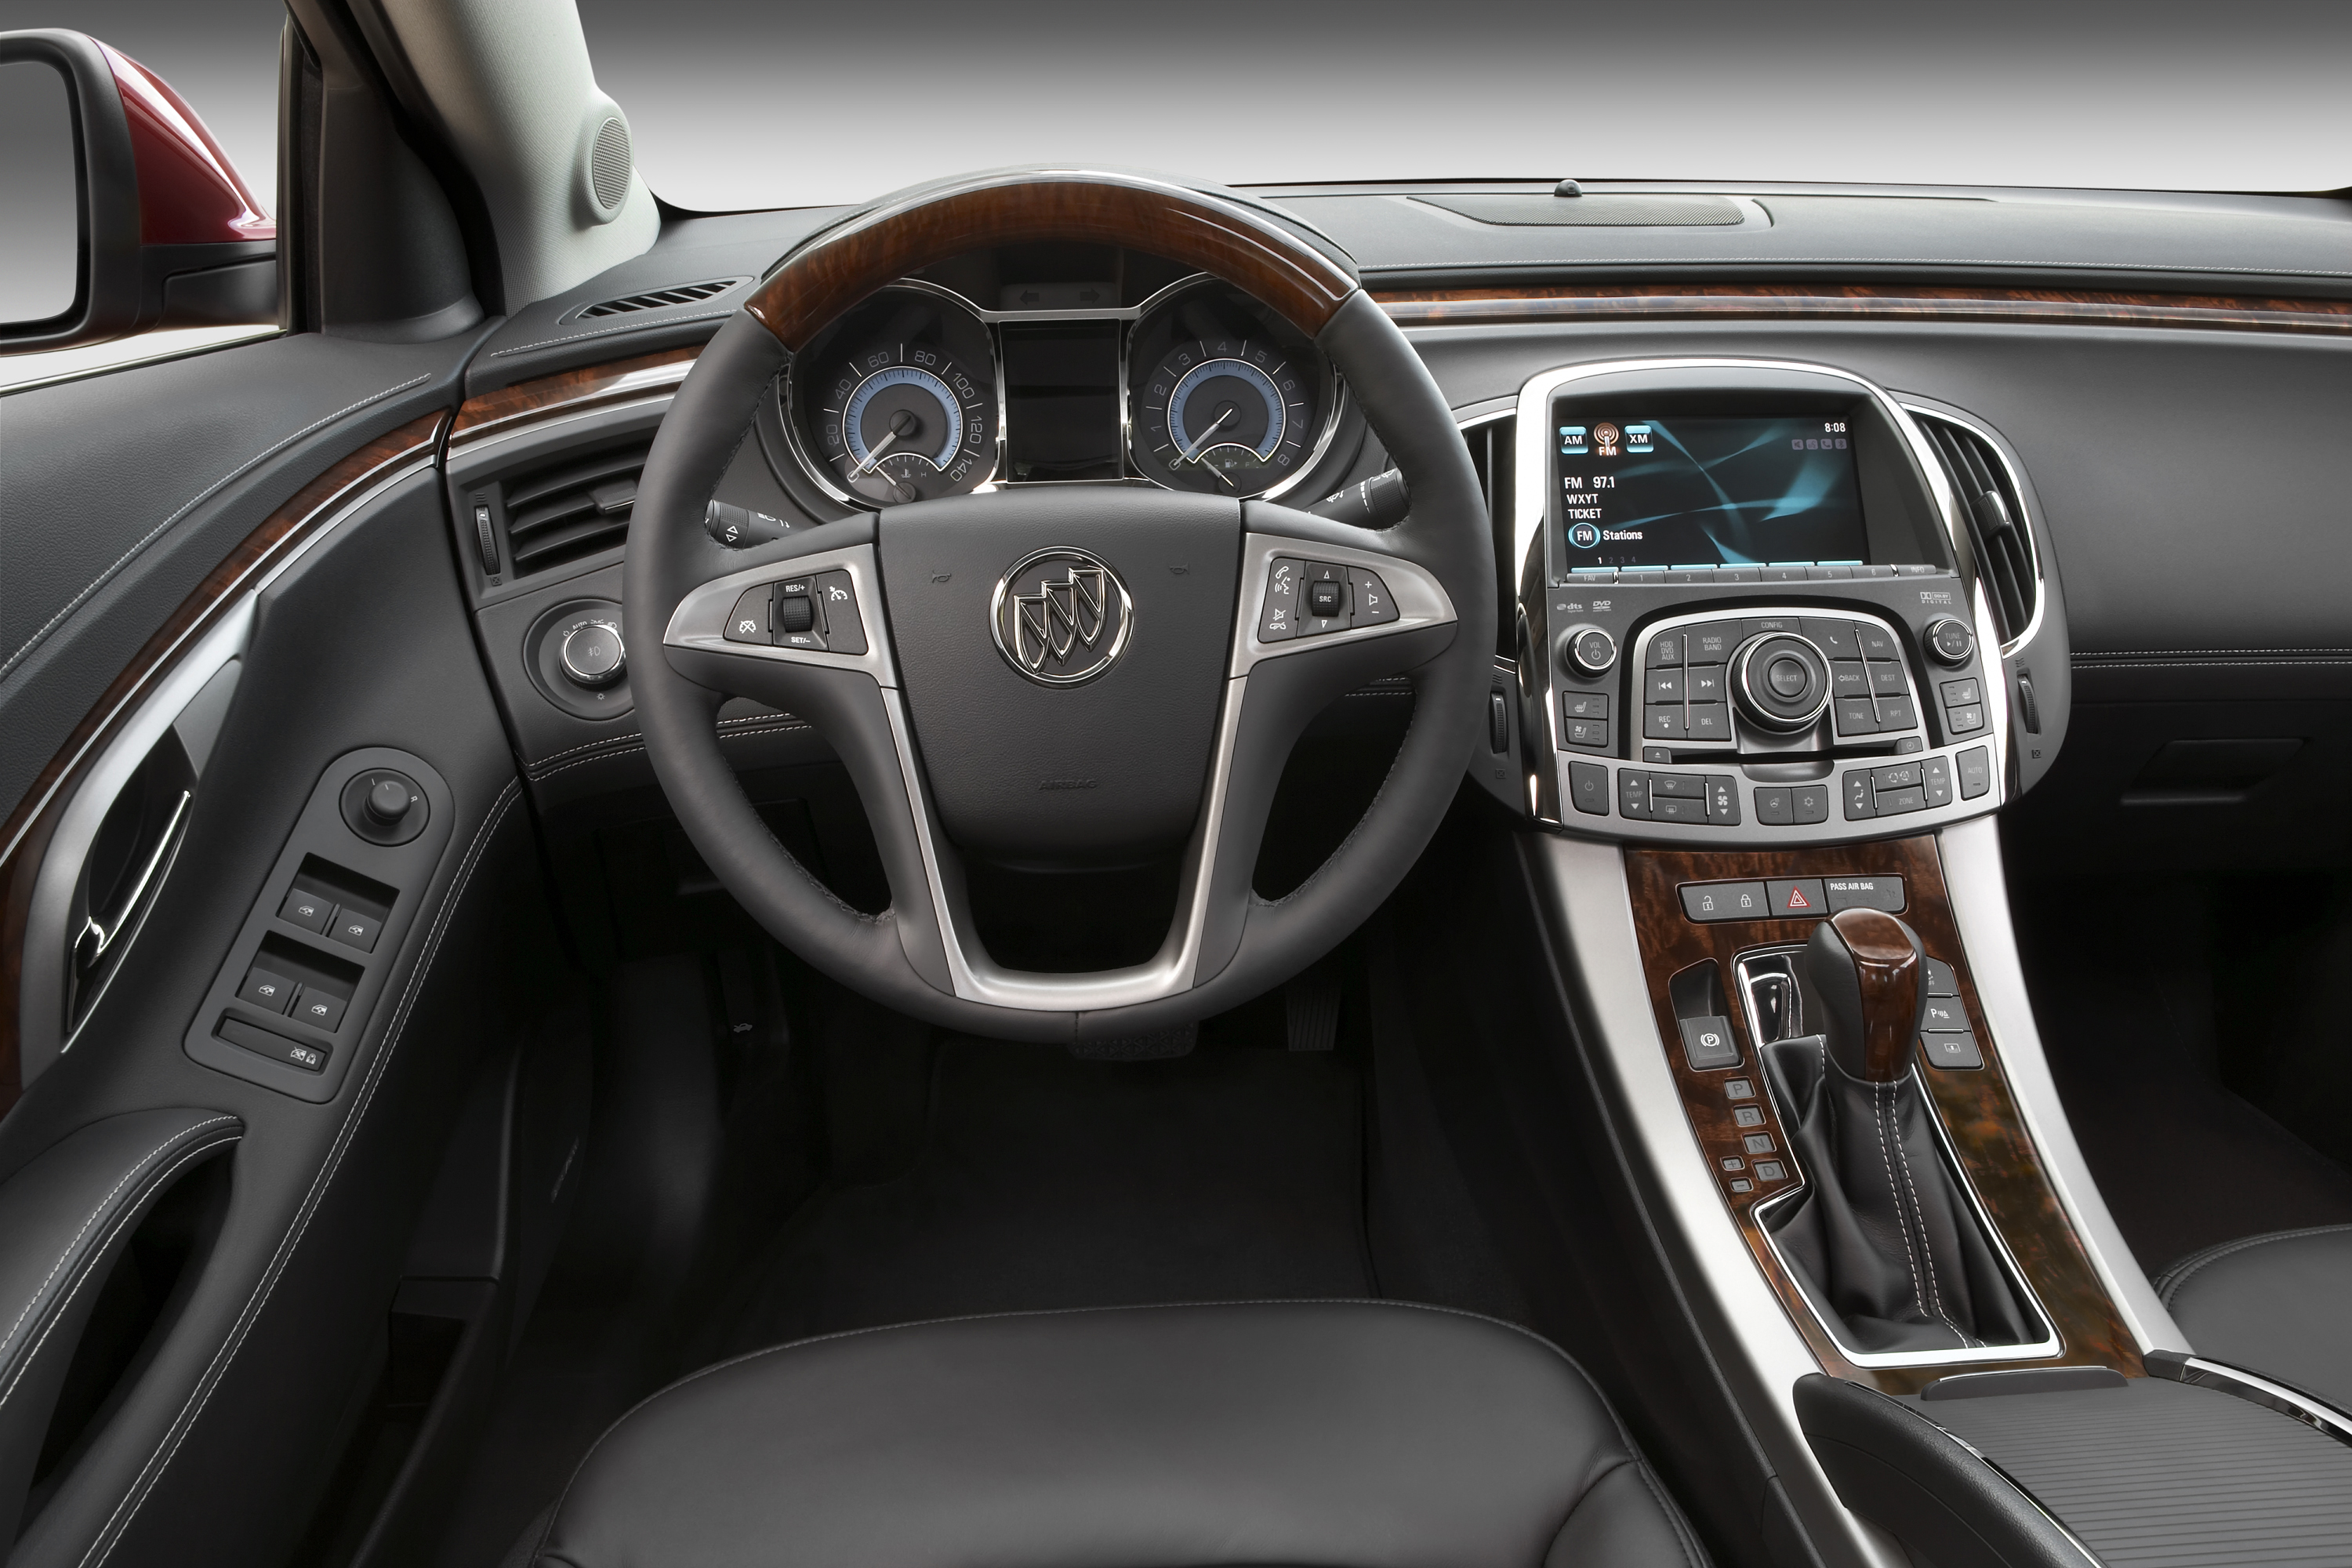 avenir buick flashy motor news cockpit new grille canada en gets lacrosse trend